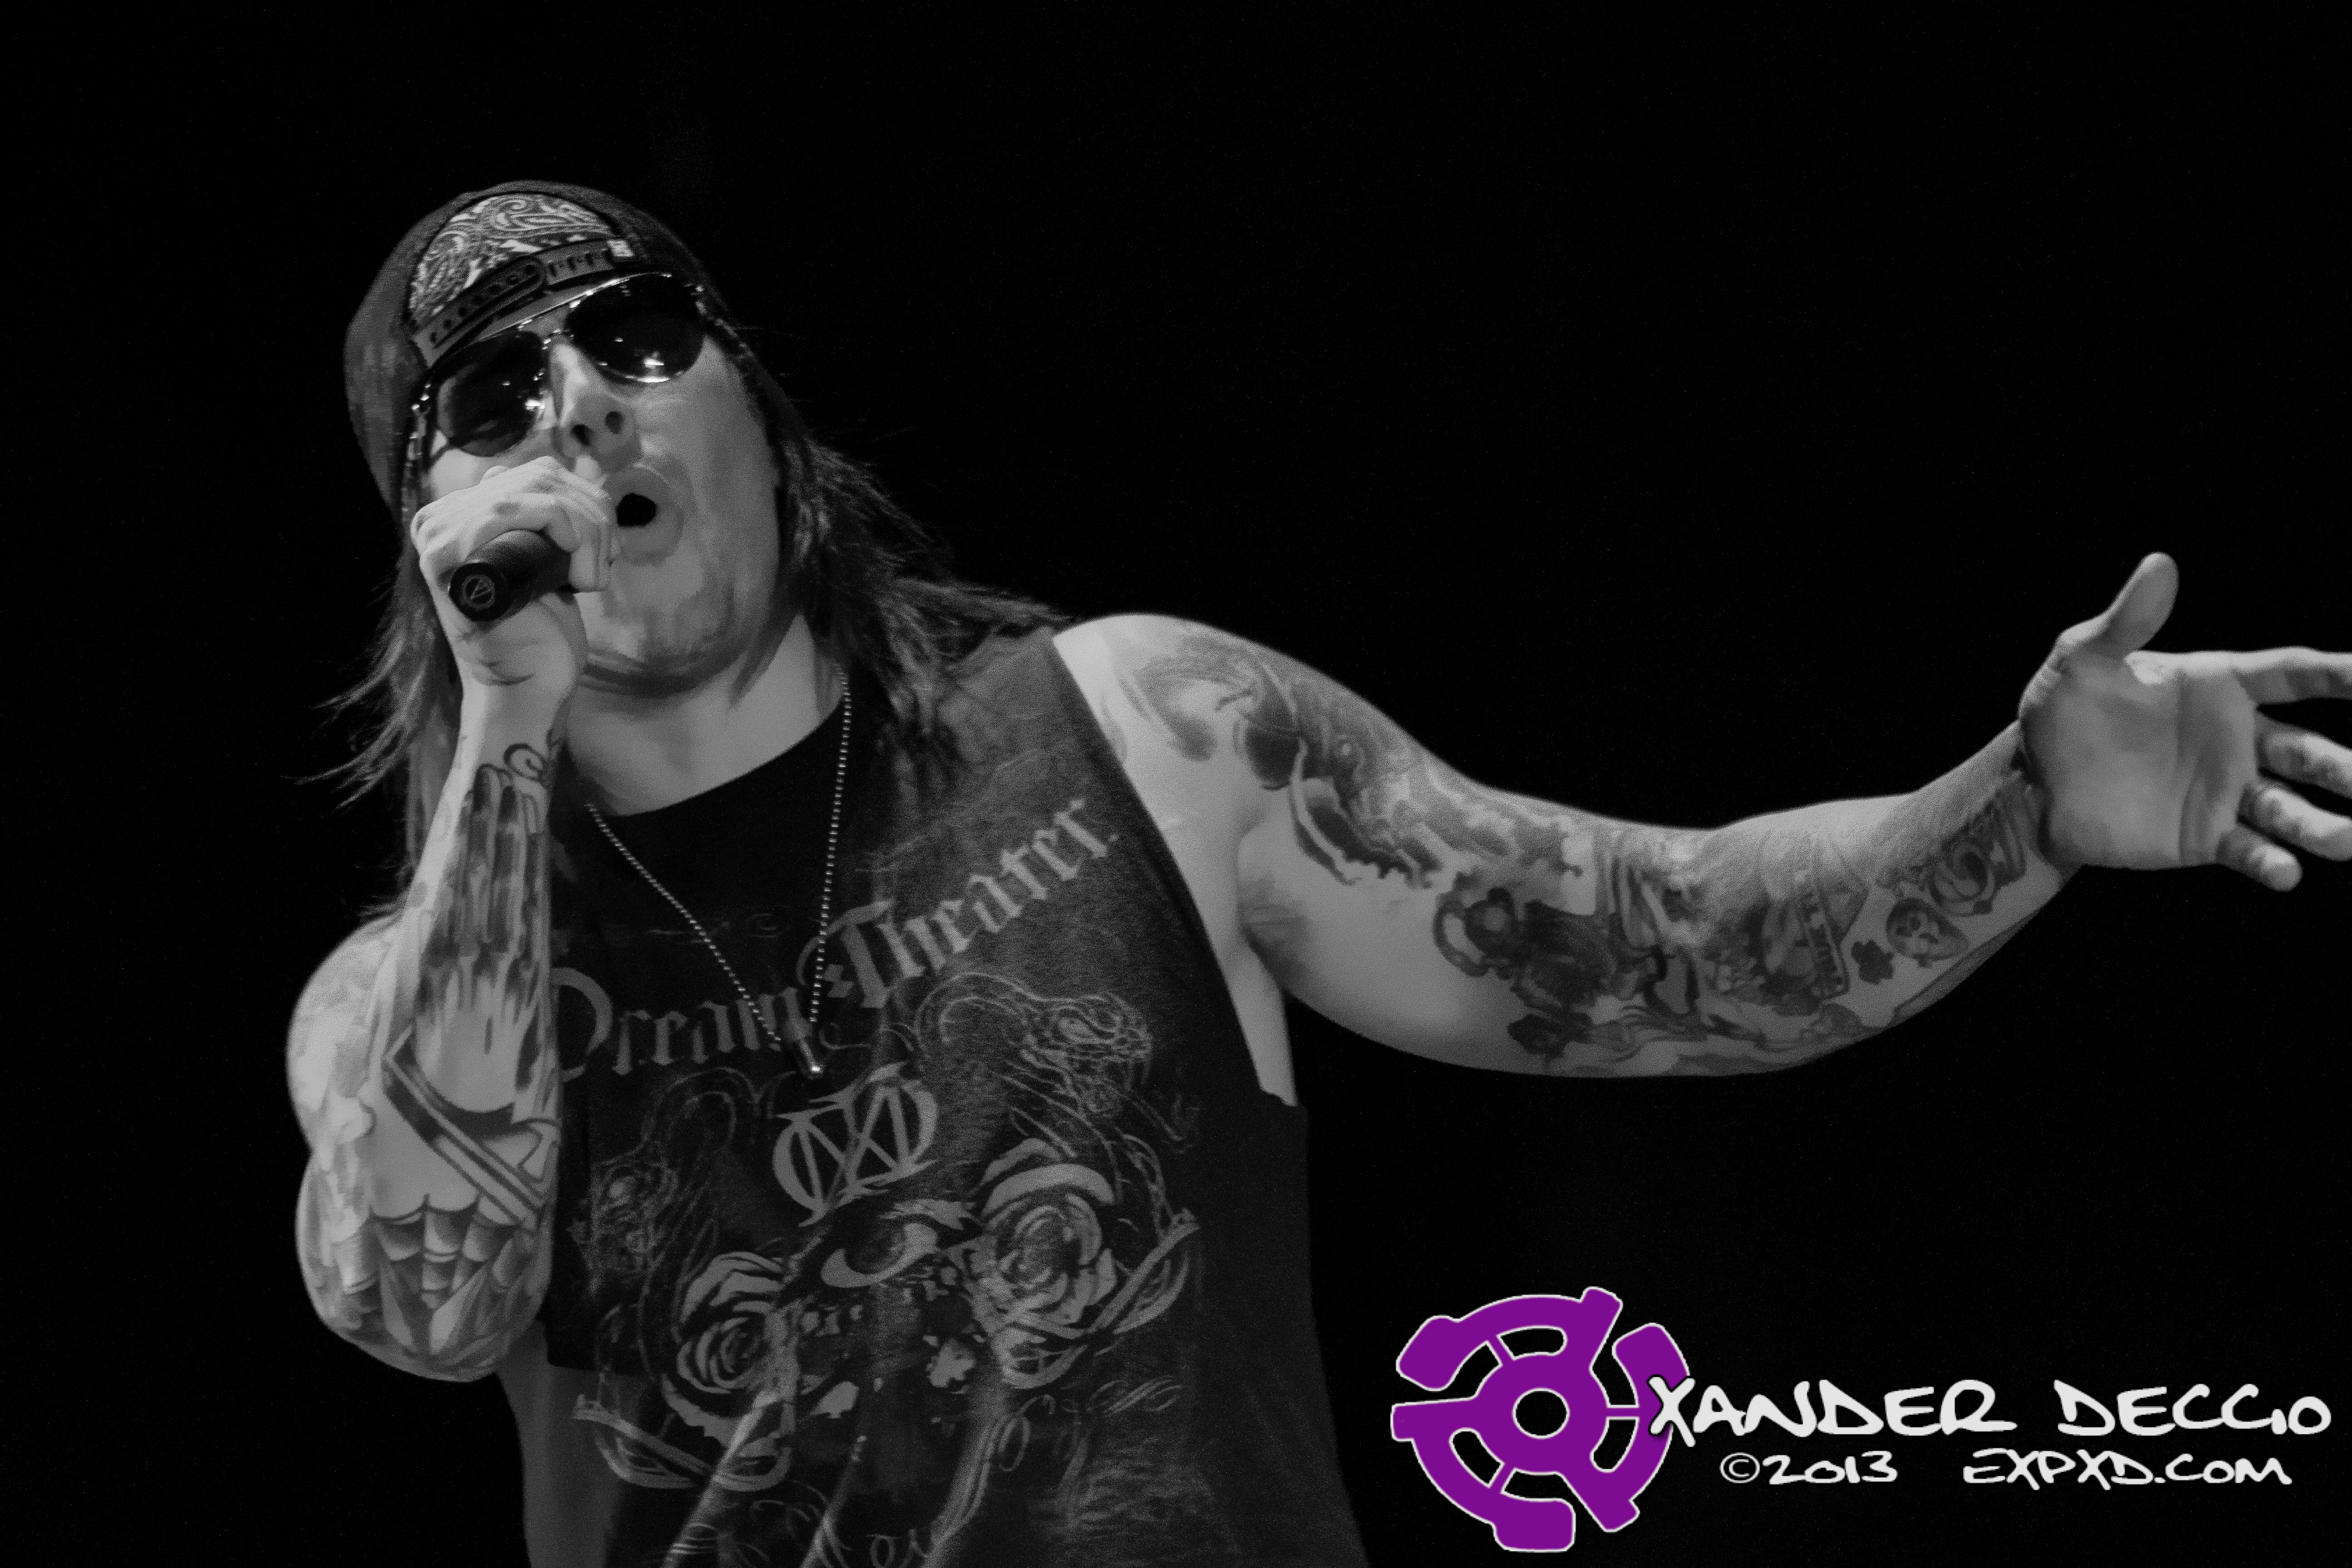 Pain In The Grass 2013: Avenged Sevenfold (Photo by Xander Deccio)